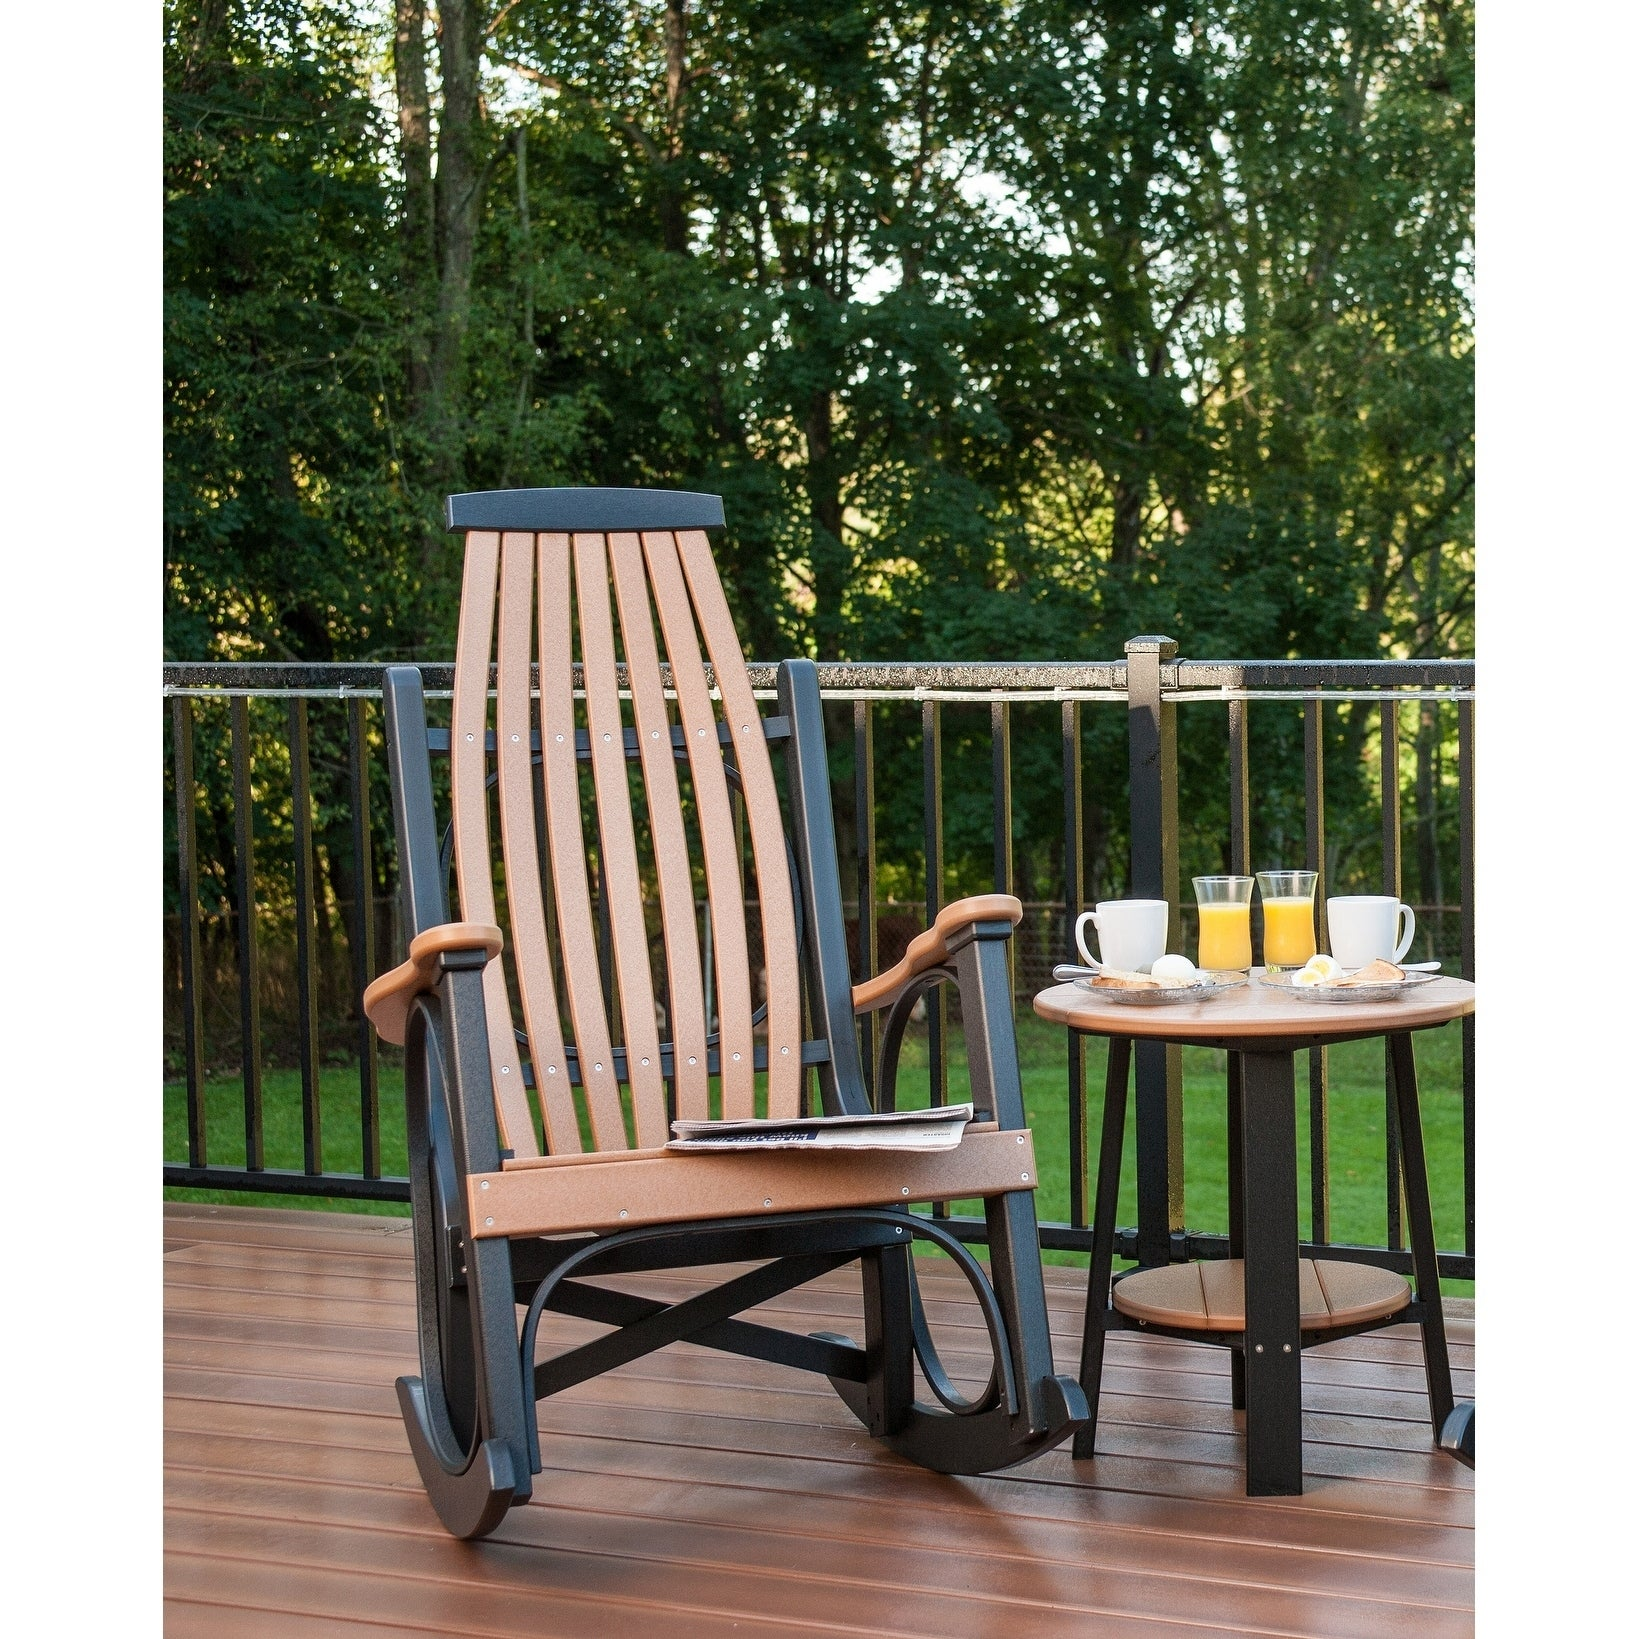 Grandpas outdoor rocking chair recycled plastic